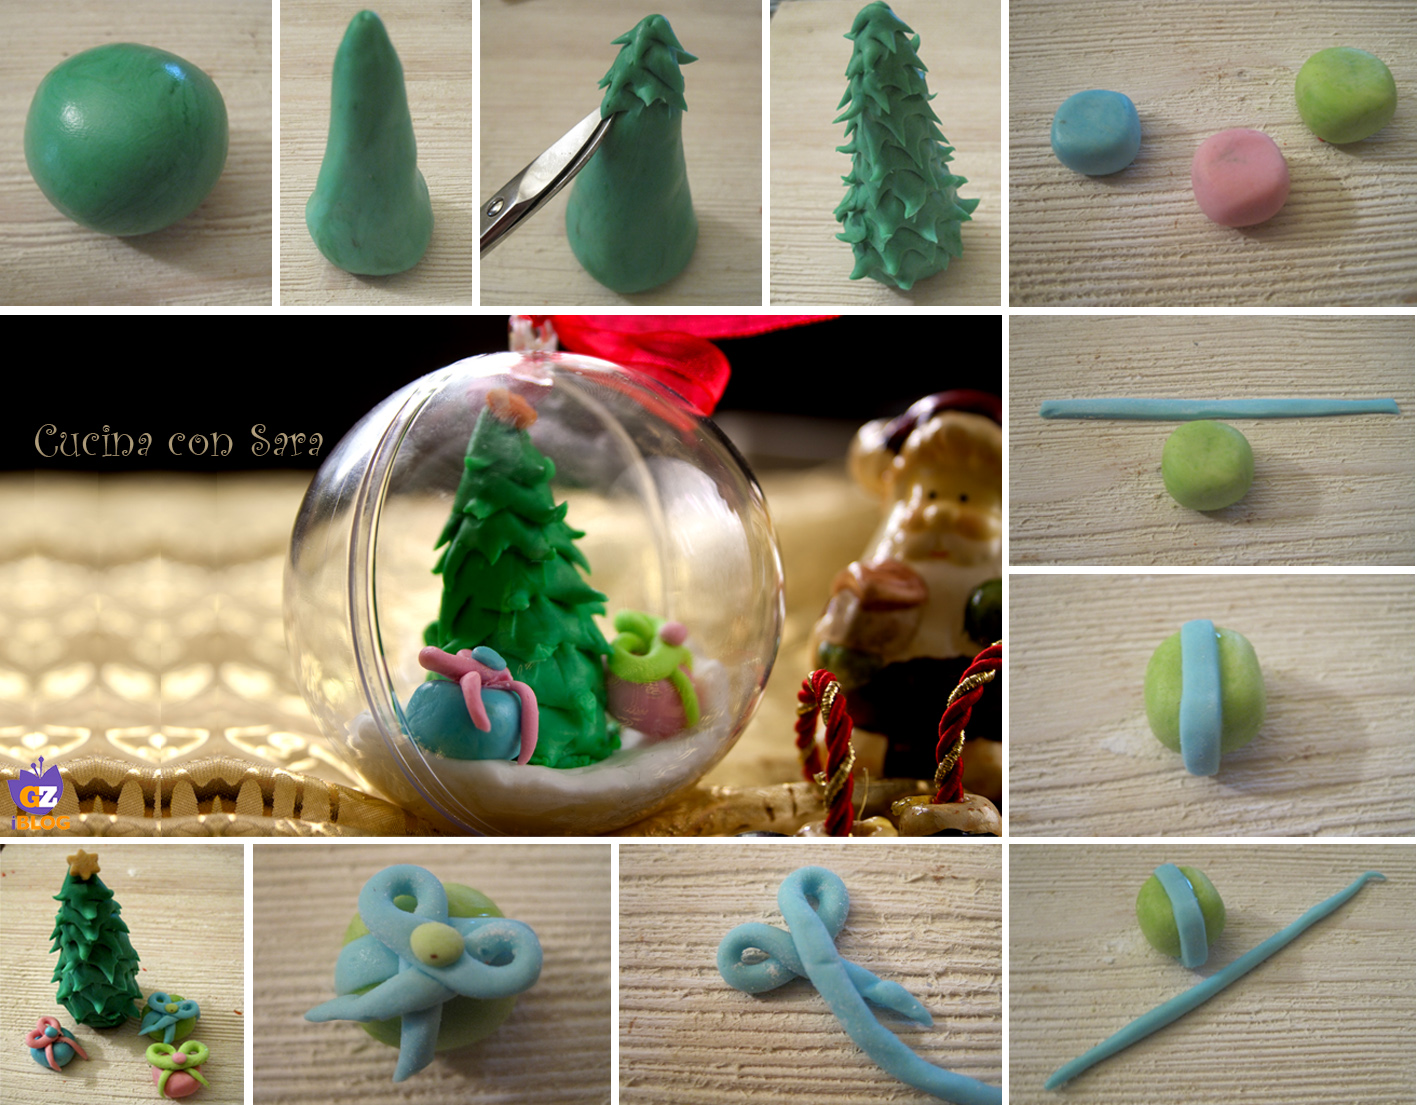 Palle di natale decorate con tutorial cucina con sara for Antifurto con le palle